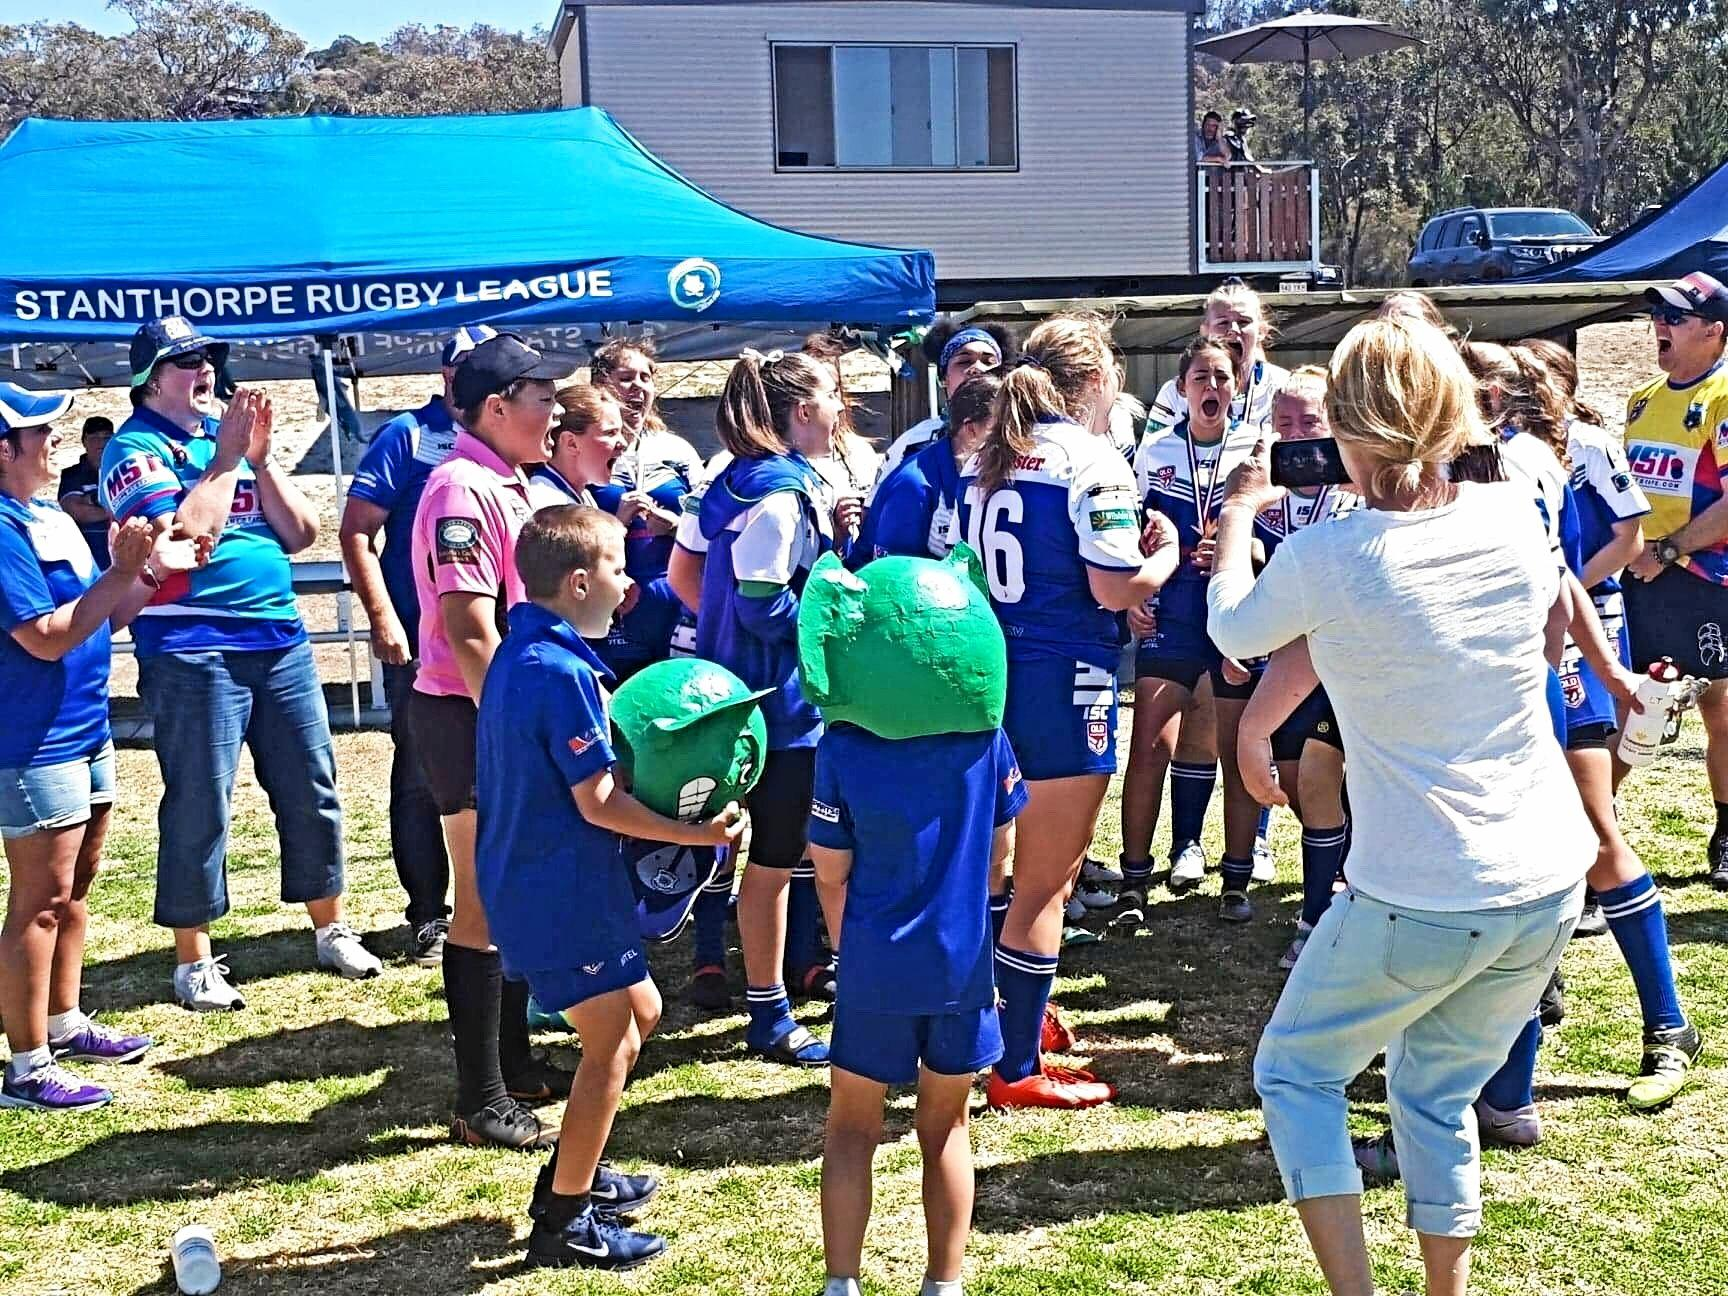 The Stanthorpe under 17 ladies league tag team celebrate a victory on Saturday at Sullivan Oval.